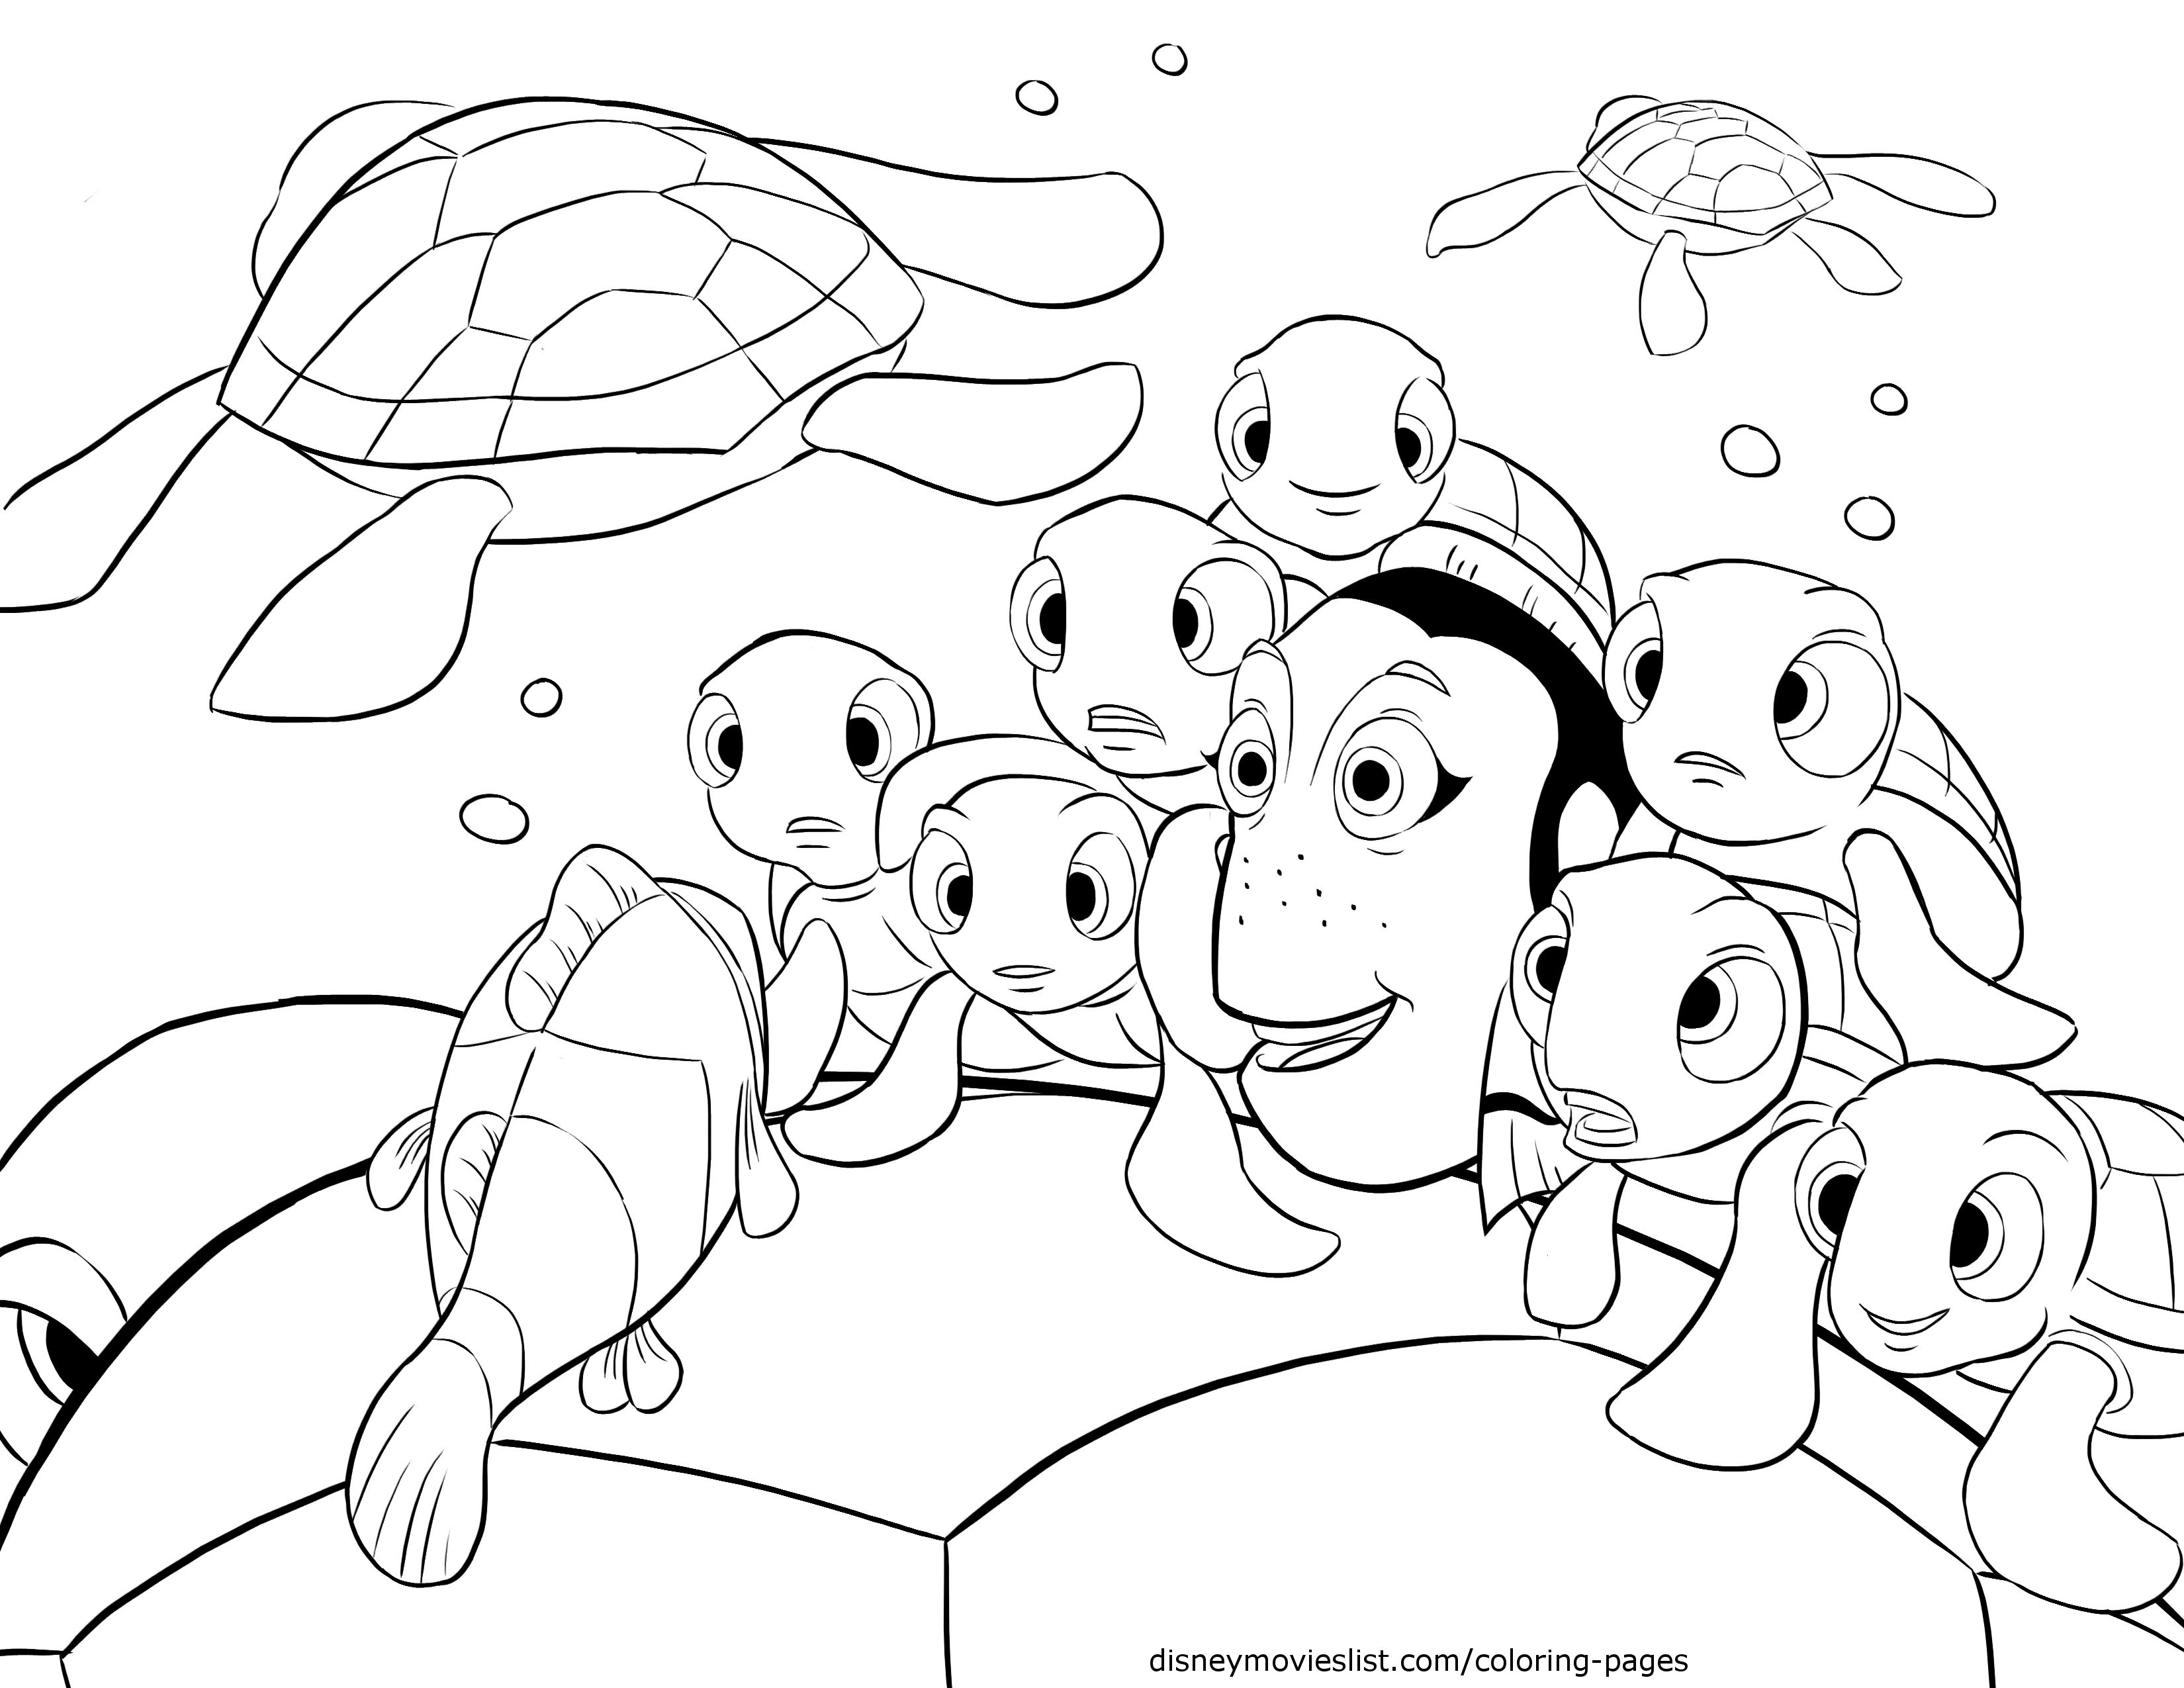 Coloring Pages: Crush And Squirt Coloring Pages Download And Print For Free